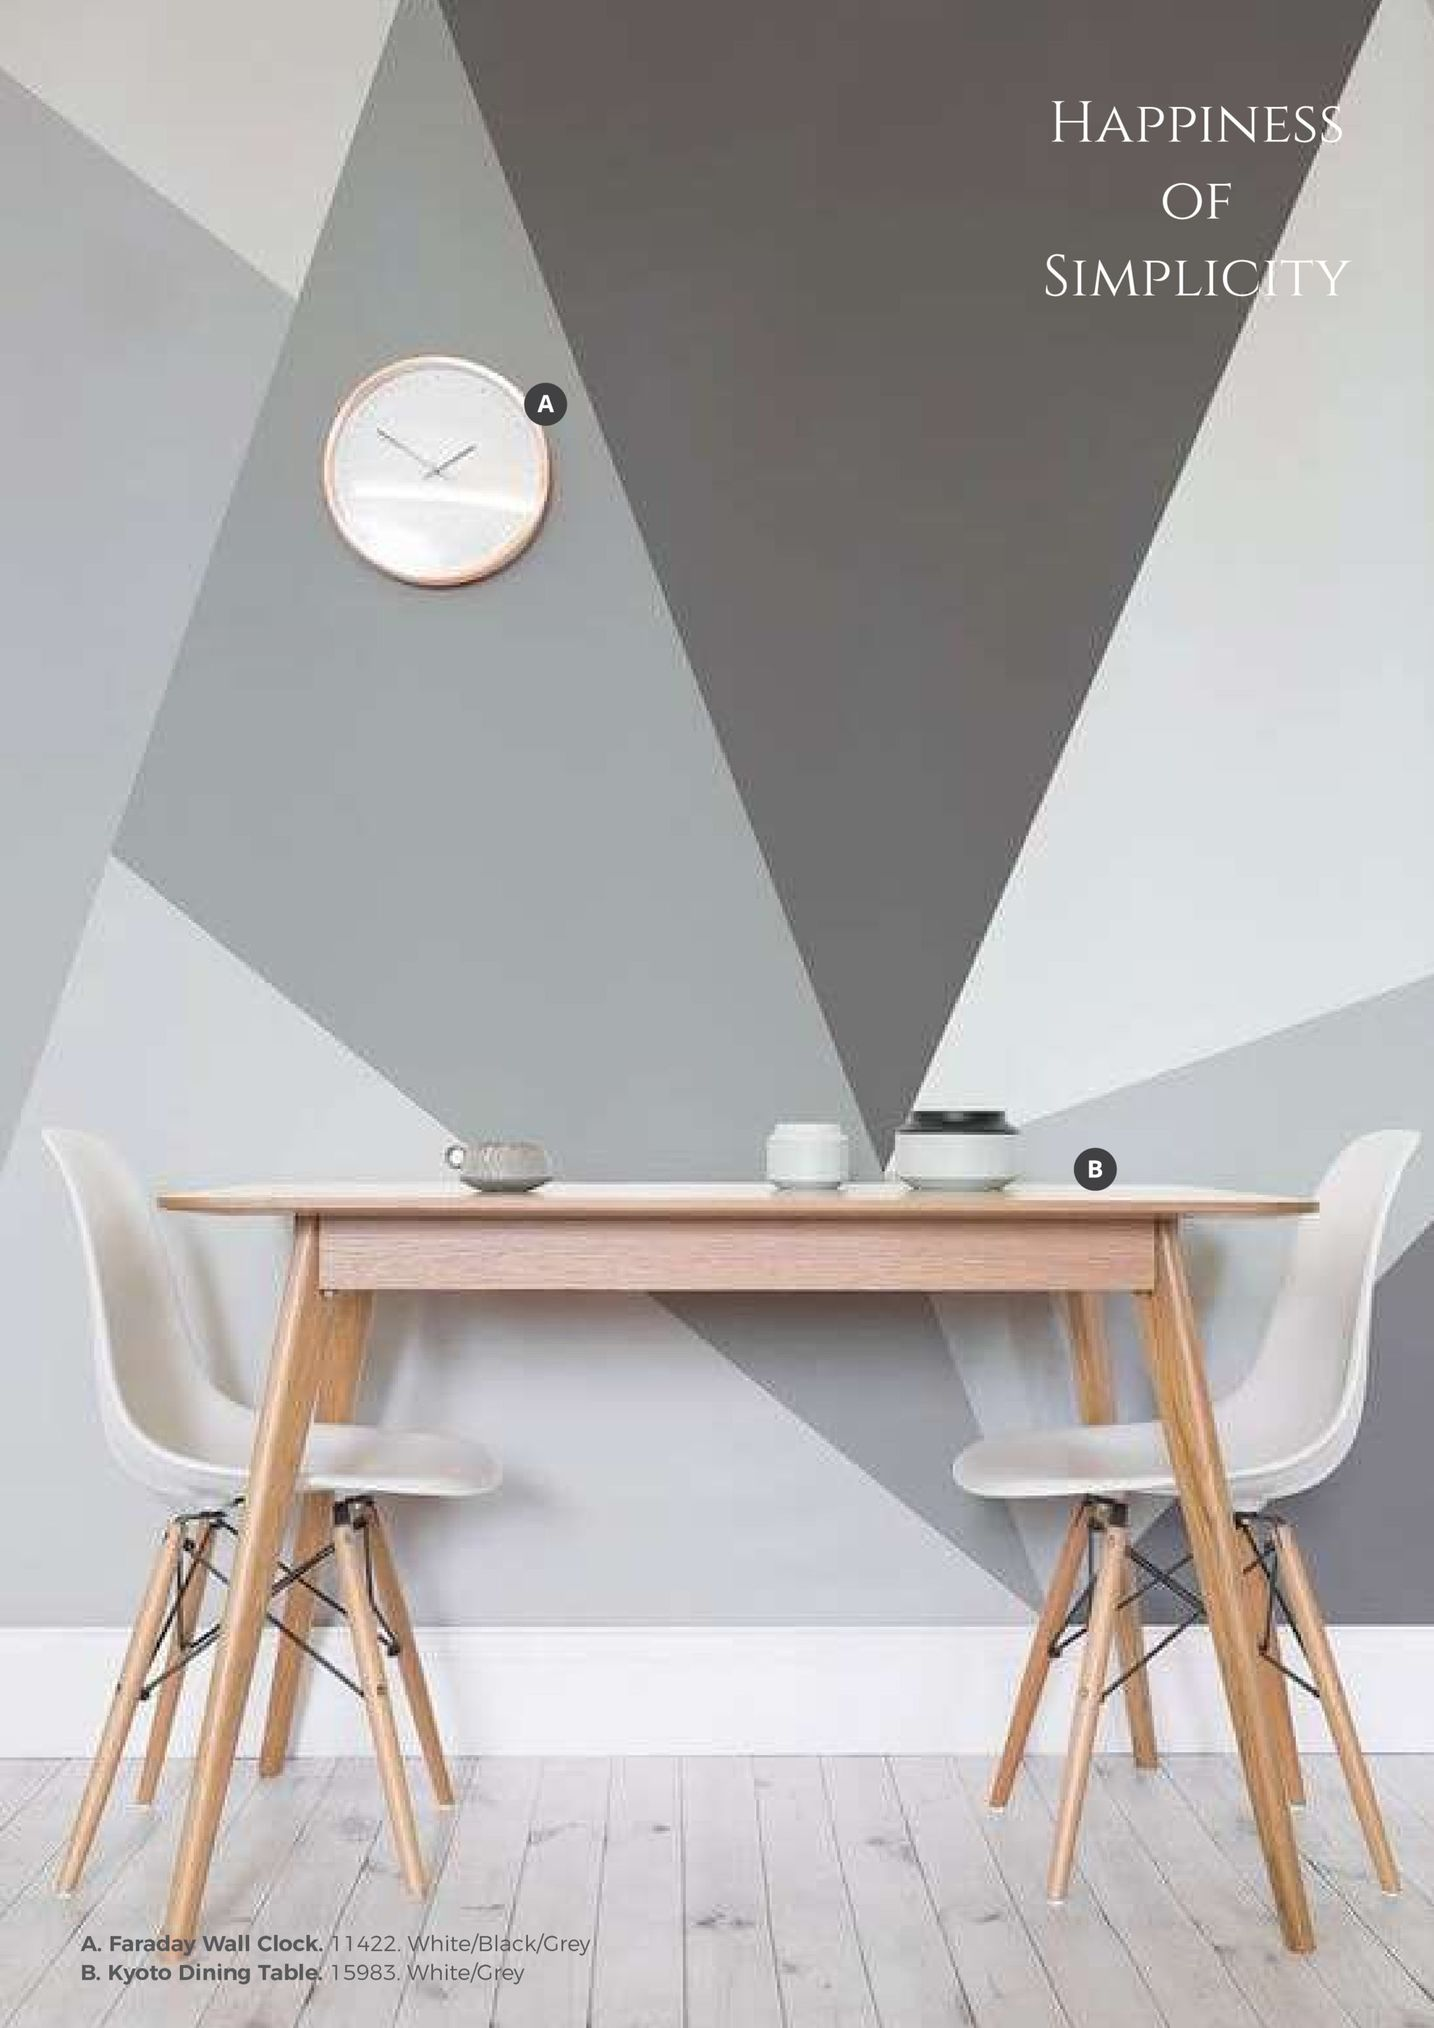 happines of simplicity a. faraday wall clock.力 2: white/black/grey: b. kyoto dining table 15983. white/grey